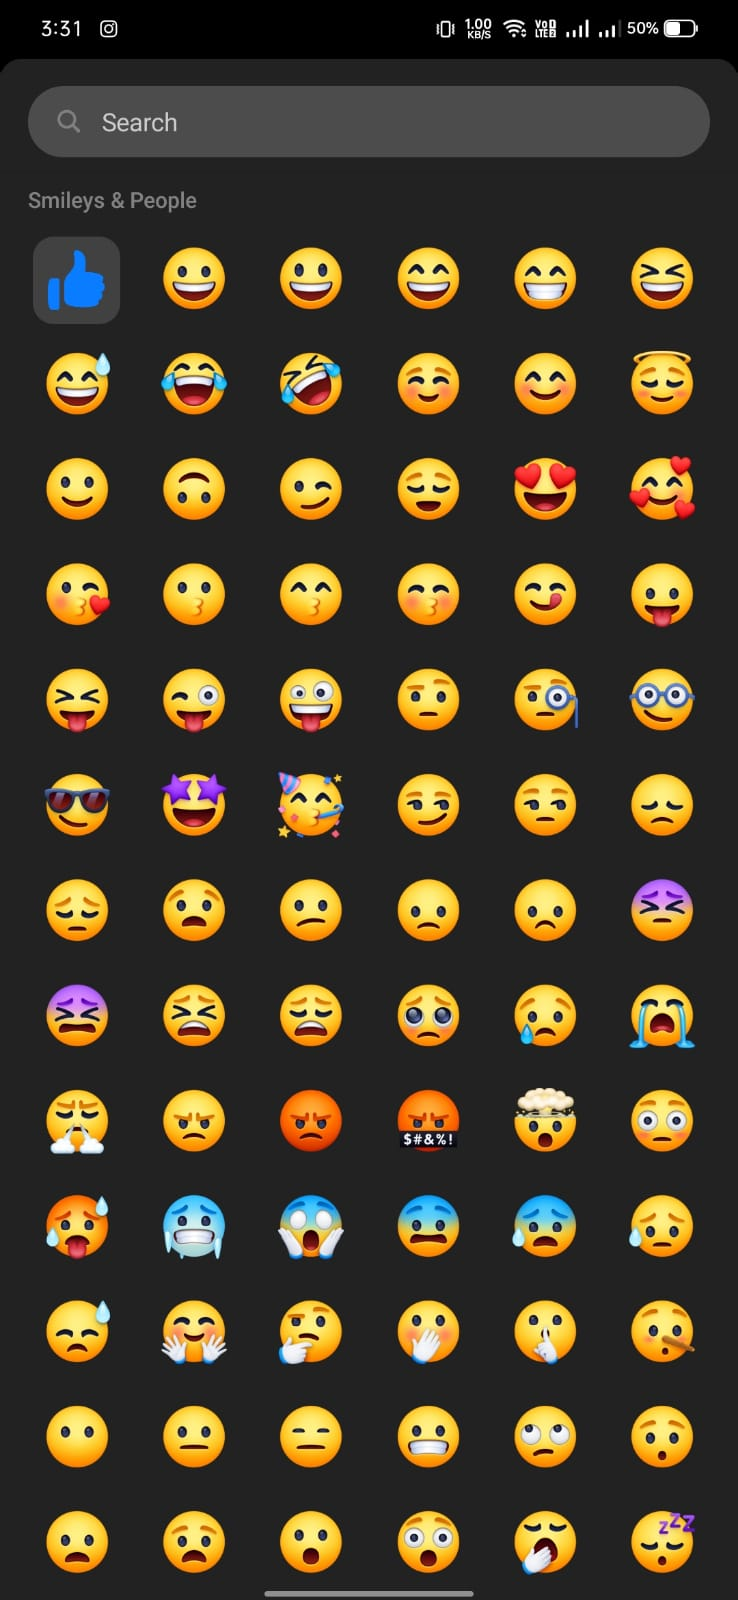 custome emoji - How to Change the Thumbs Up Icon in Facebook Chat